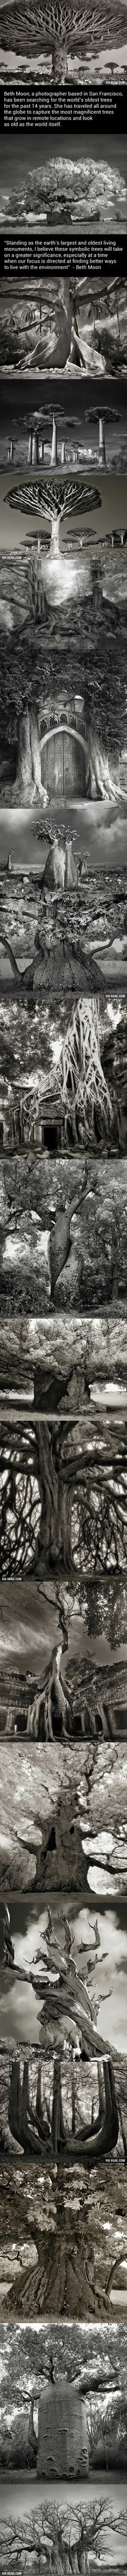 Woman Spends 14 Years Photographing World's Oldest Trees - 9GAG